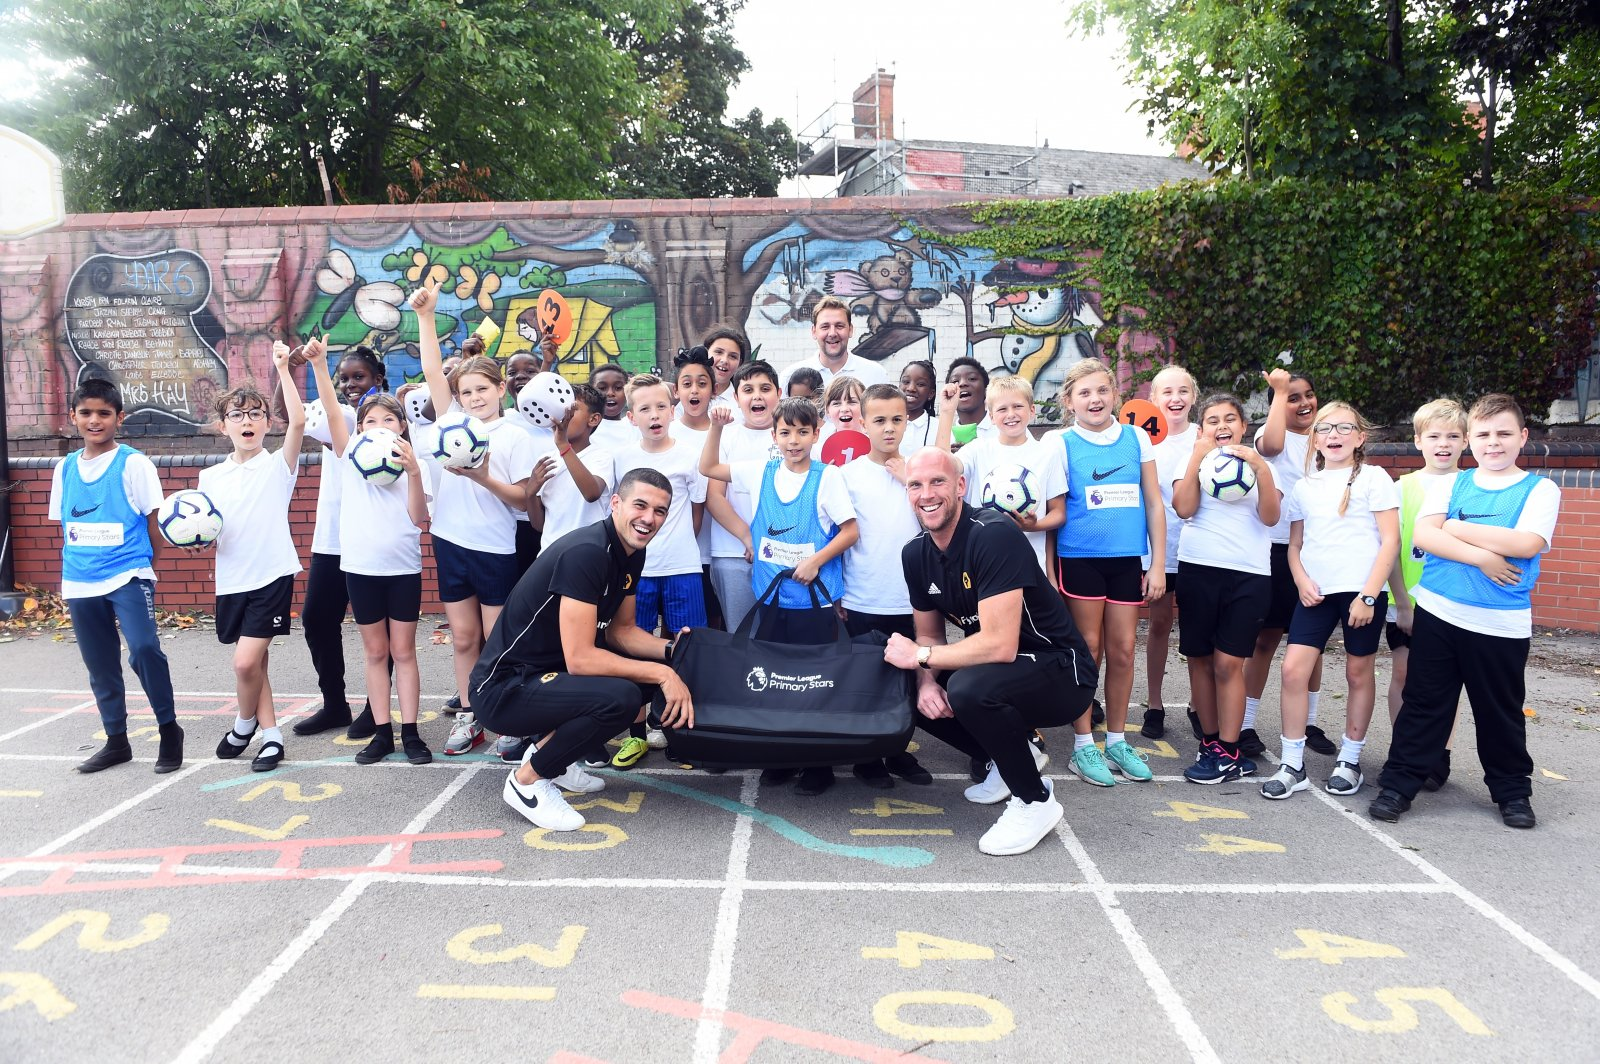 Premier League players head back to school to take part in Premier League Primary Stars PE lessons